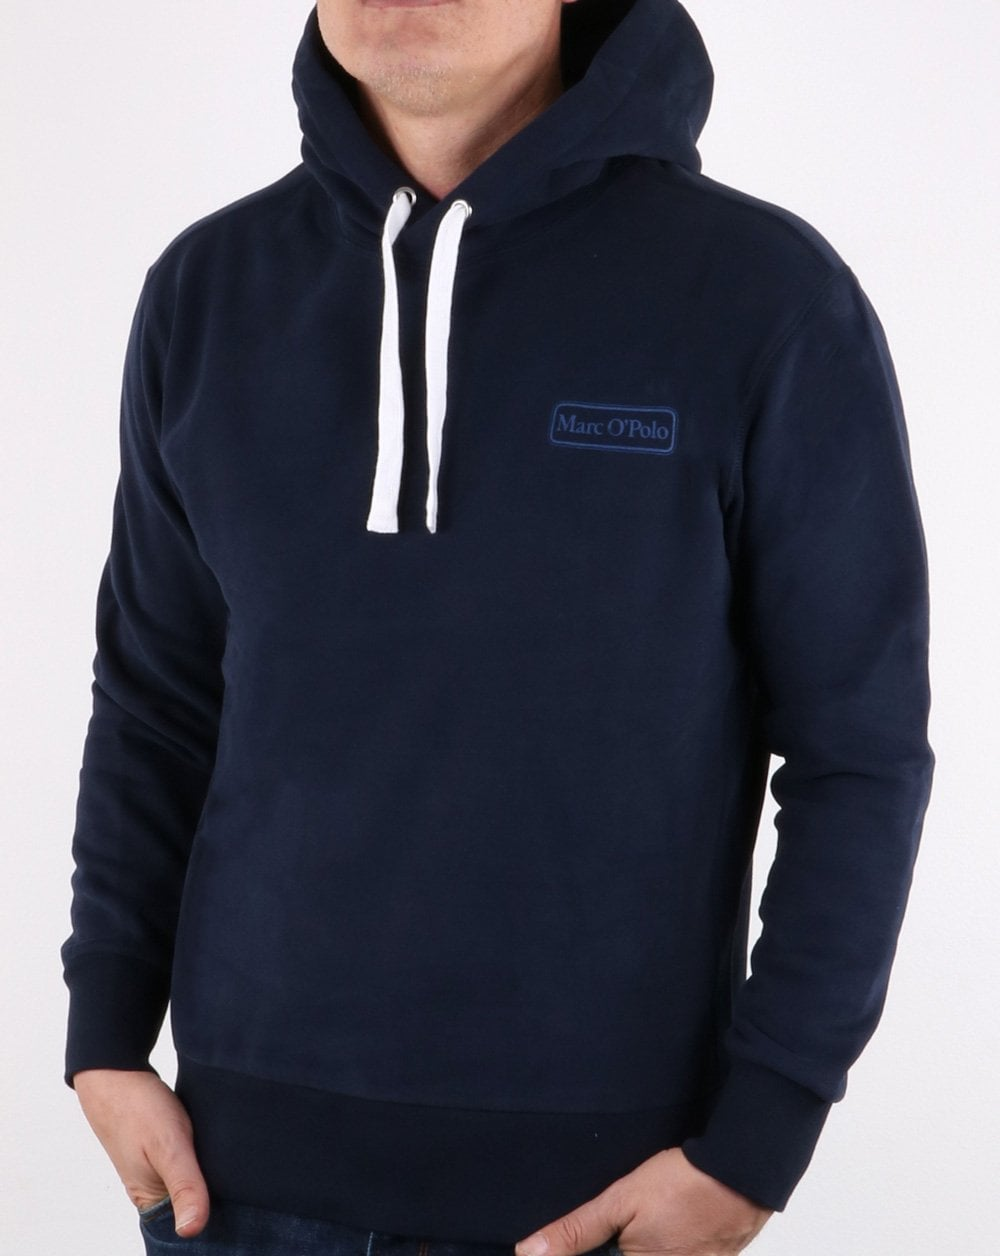 marc o'polo hoody